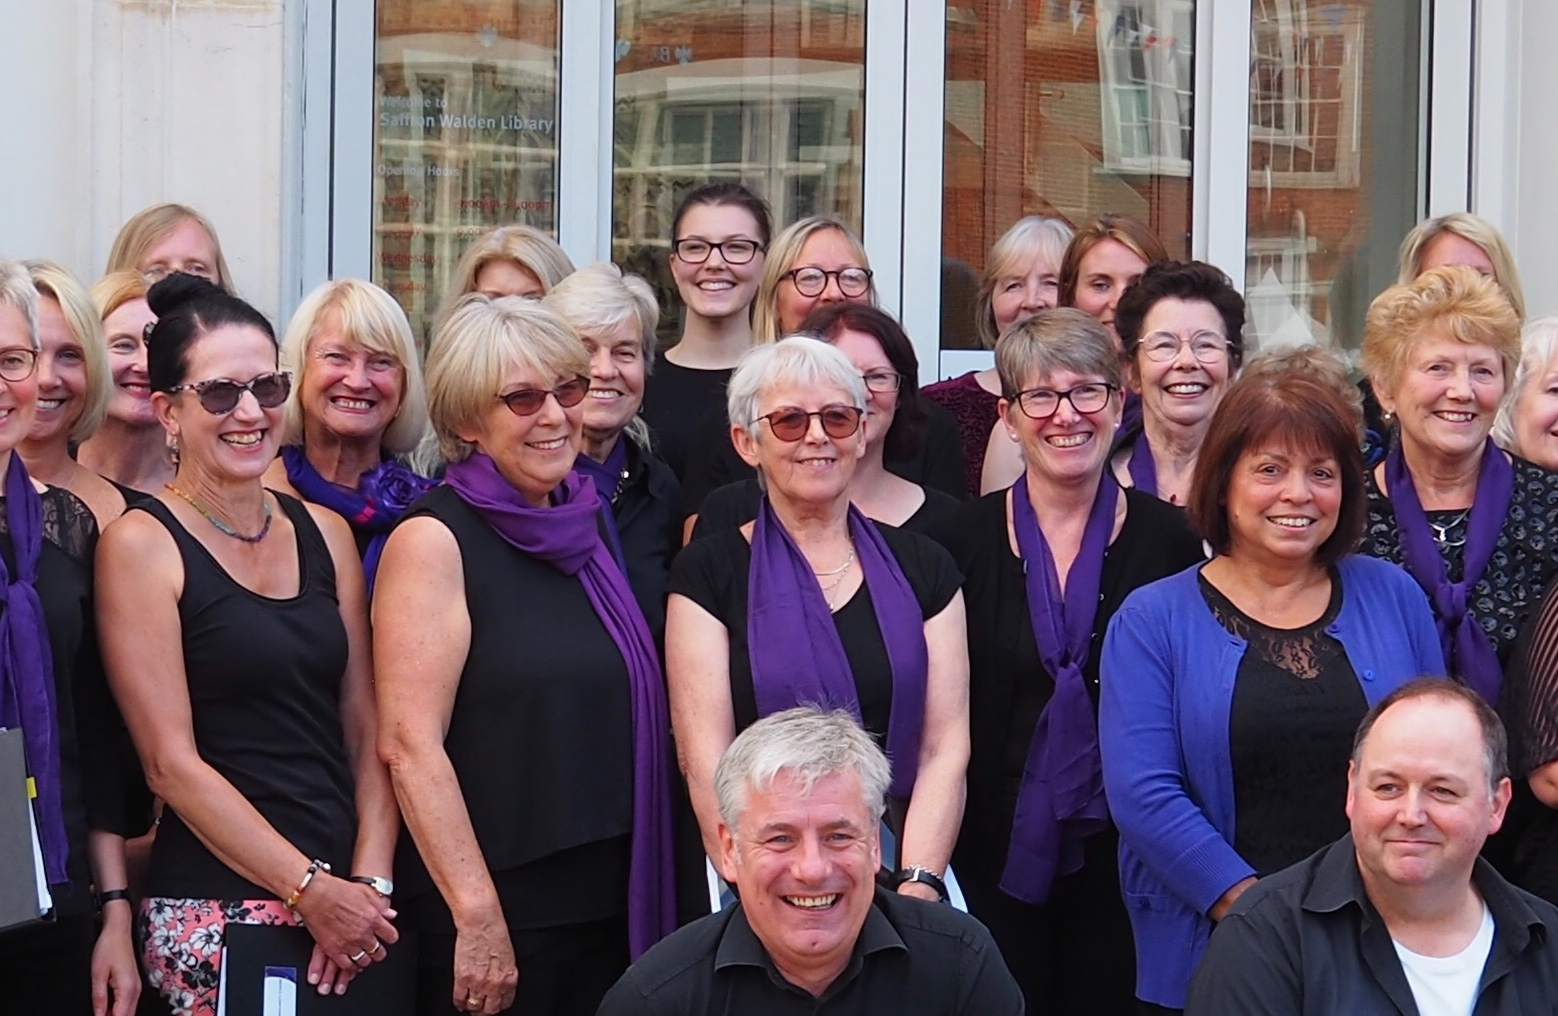 Saffron Building Soc. Community Choir